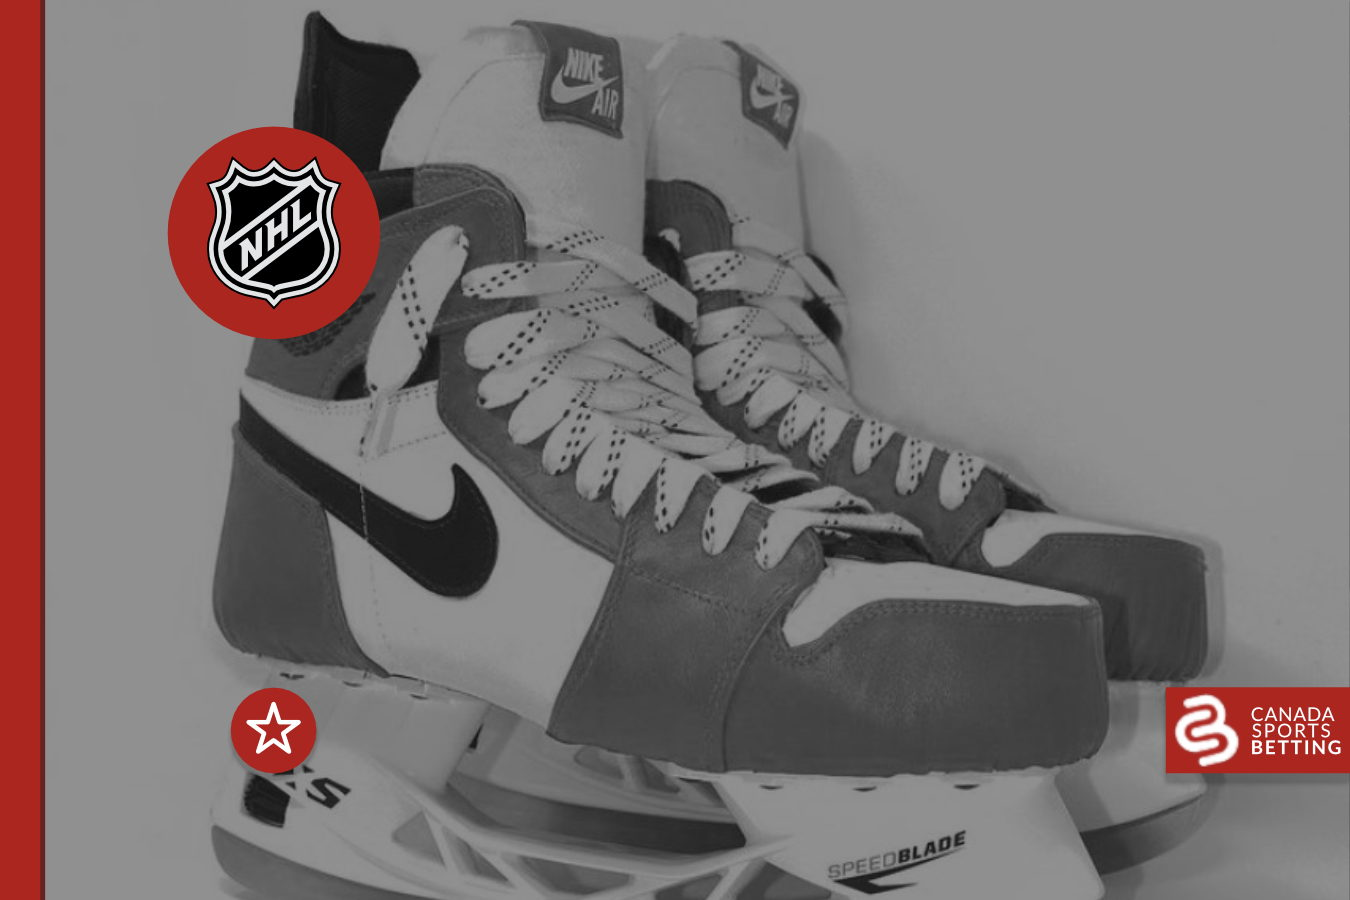 Air Jordan on Ice: Air Jordan 1's turned into hockey skates